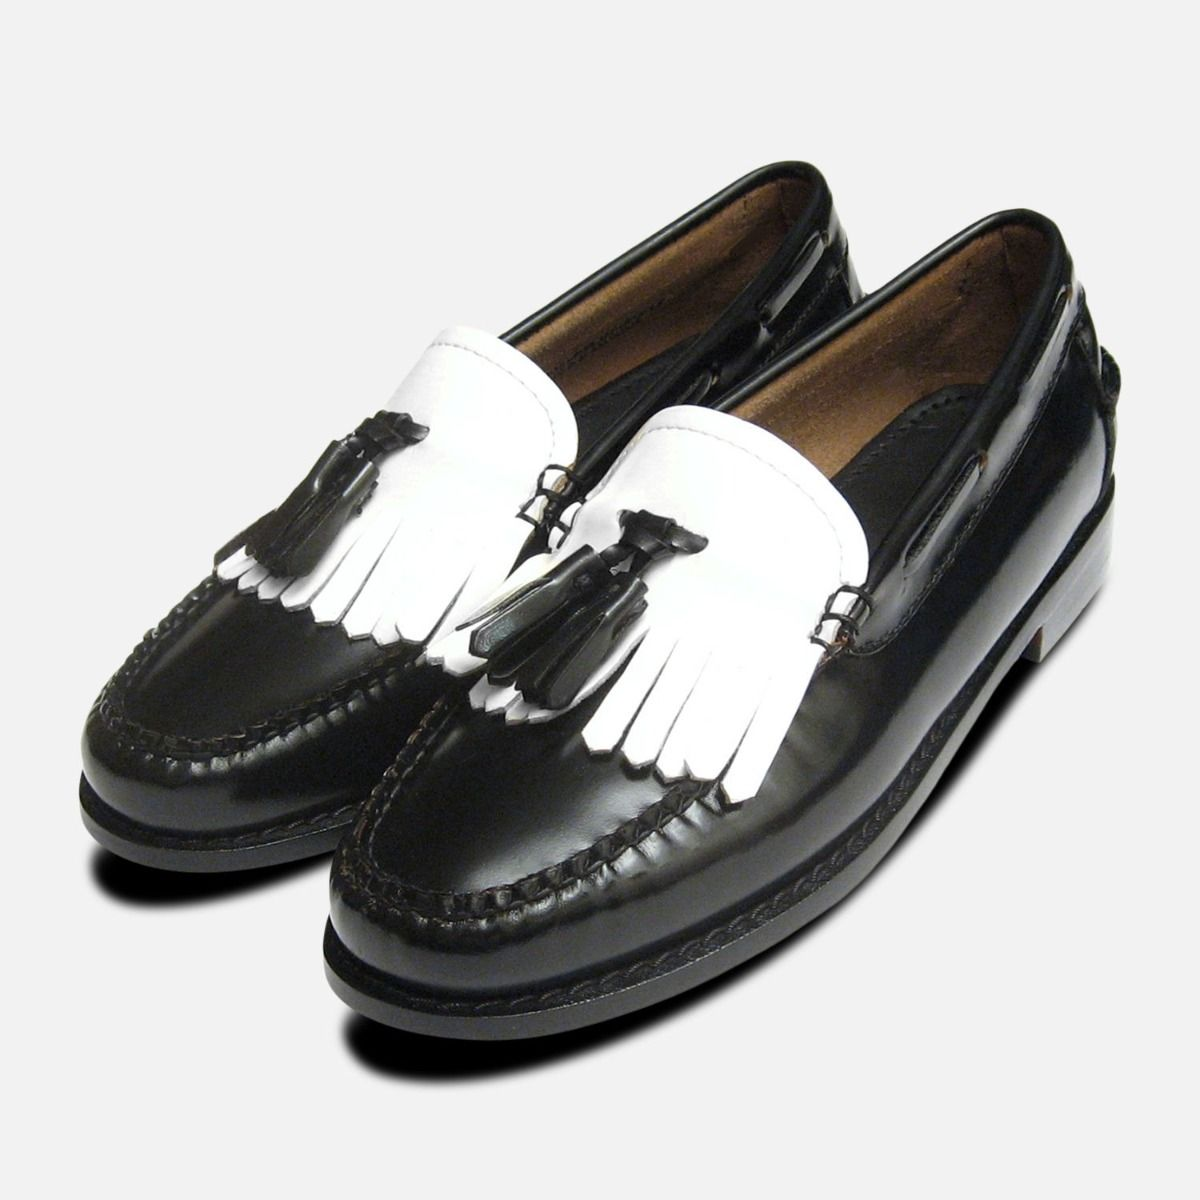 31d2e477650 Ladies Two Tone Black   White Tassel Loafers